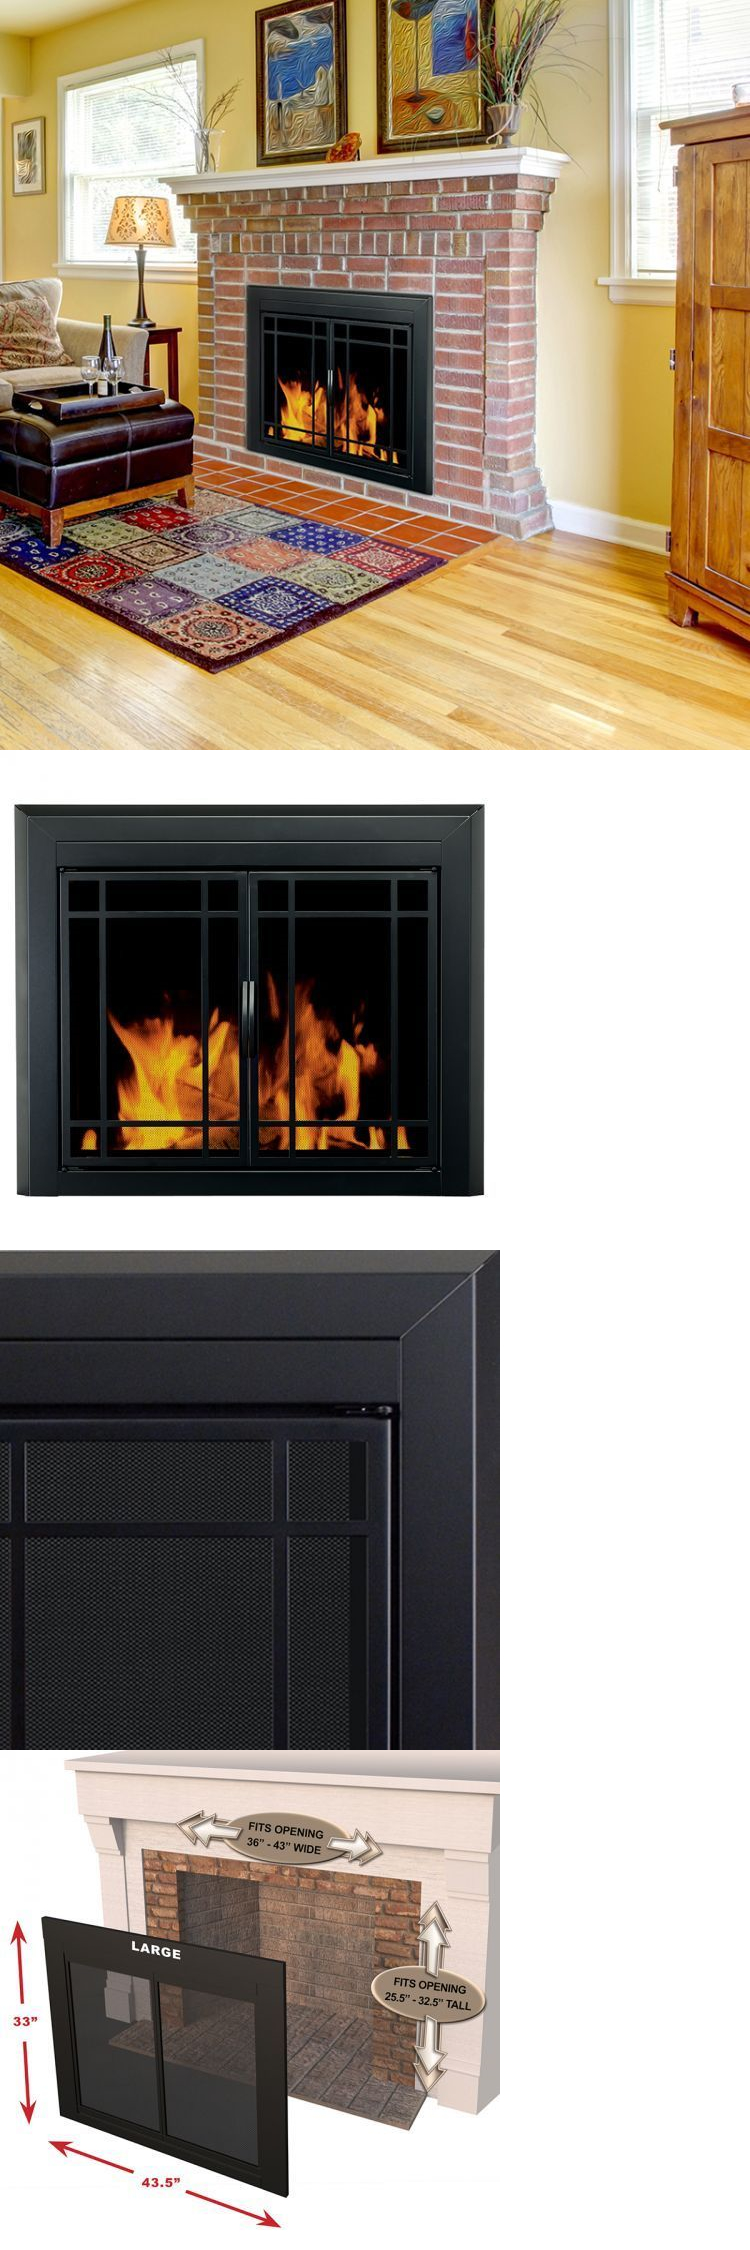 Fireplace Screens and Doors 38221: Pleasant Hearth Glass Fireplace ...